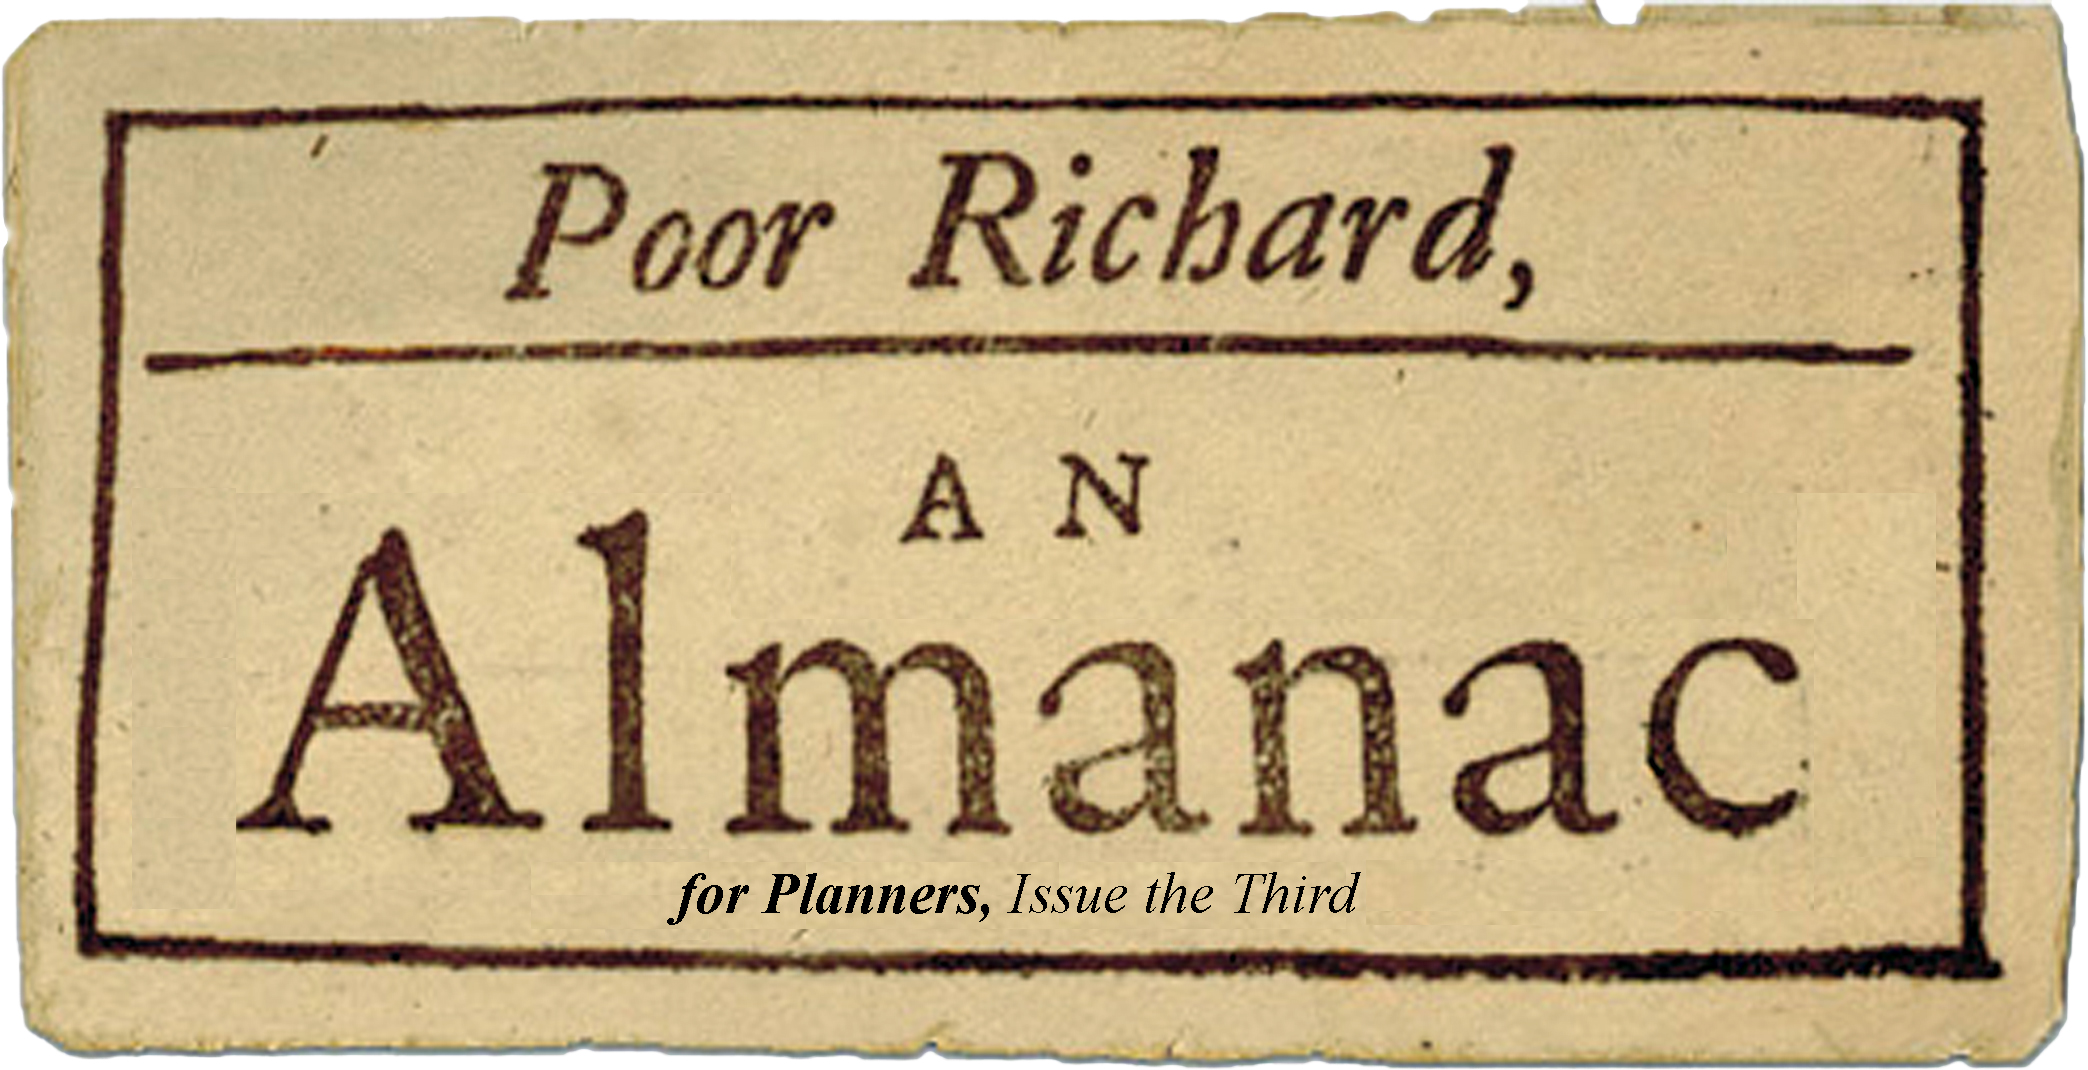 "poor man s almanac Poor richard's almanac advice and comments from the noted 18th century  almanac, compiled by benjamin franklin ""men meet mountains never"" ""fish  and."